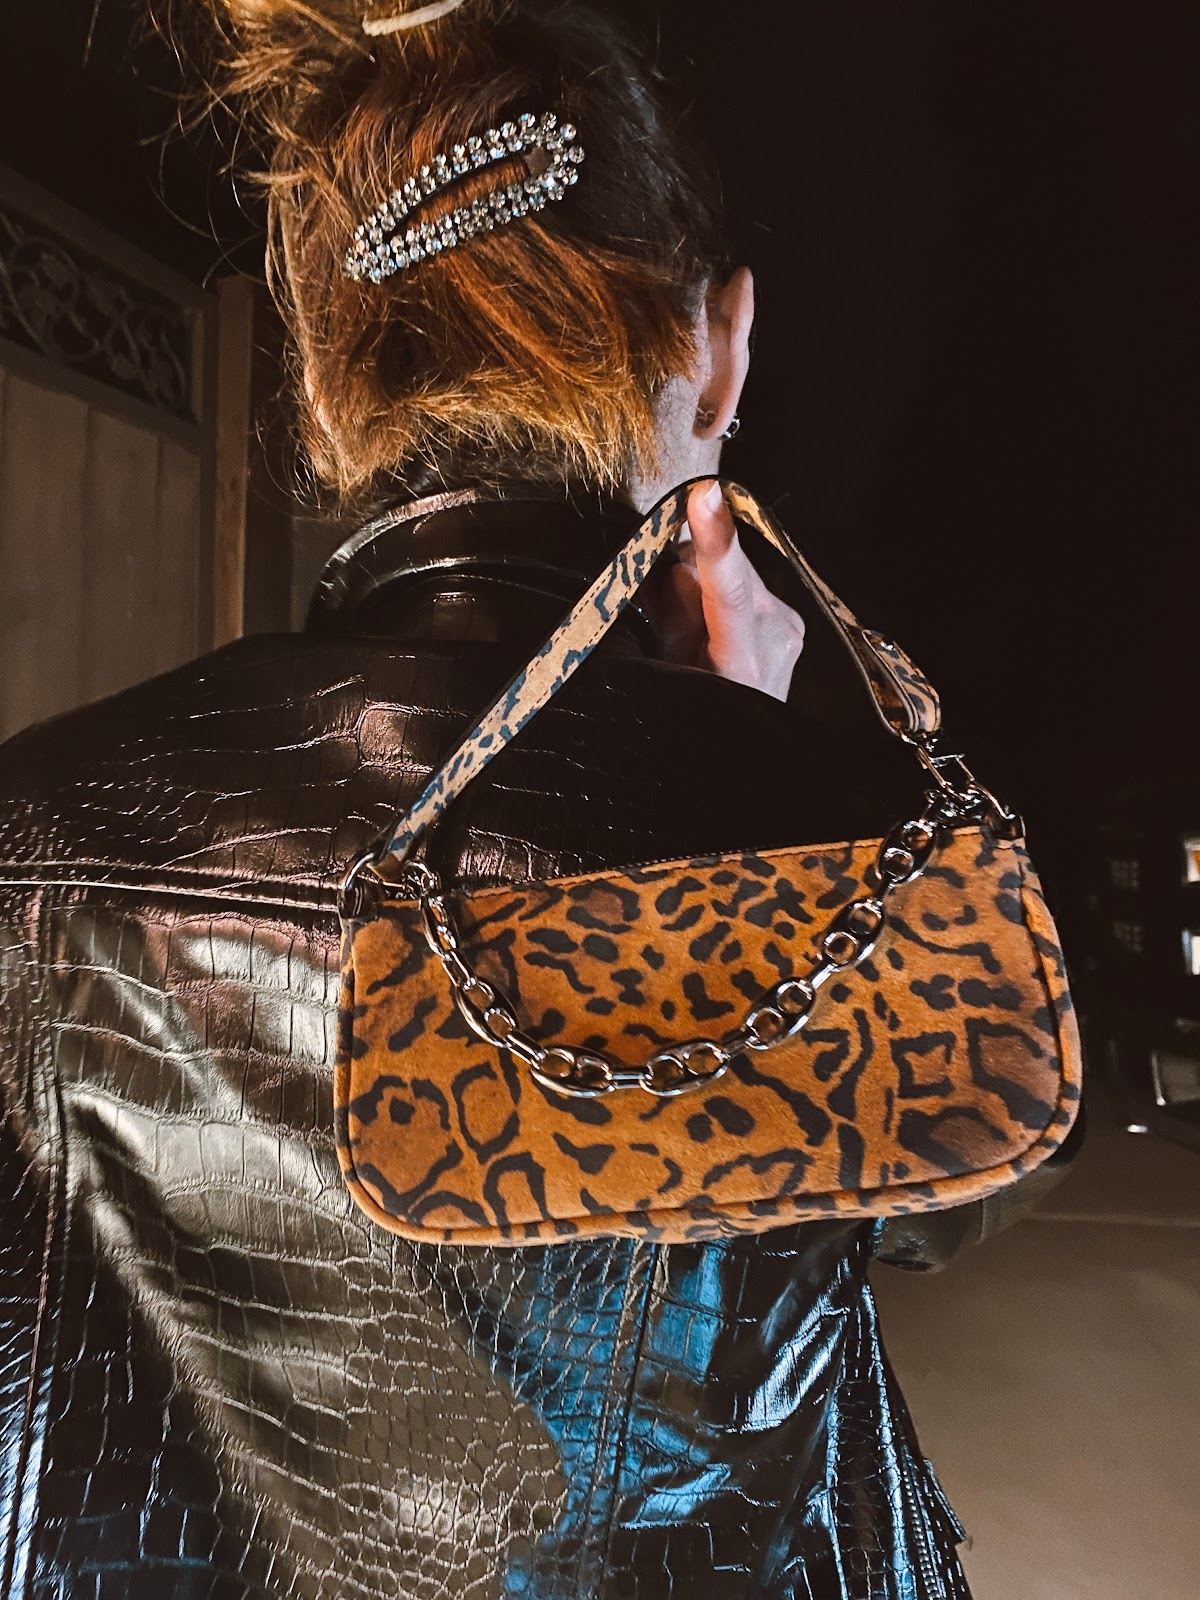 Edgy datenight look via animal print detail and a touch of metal